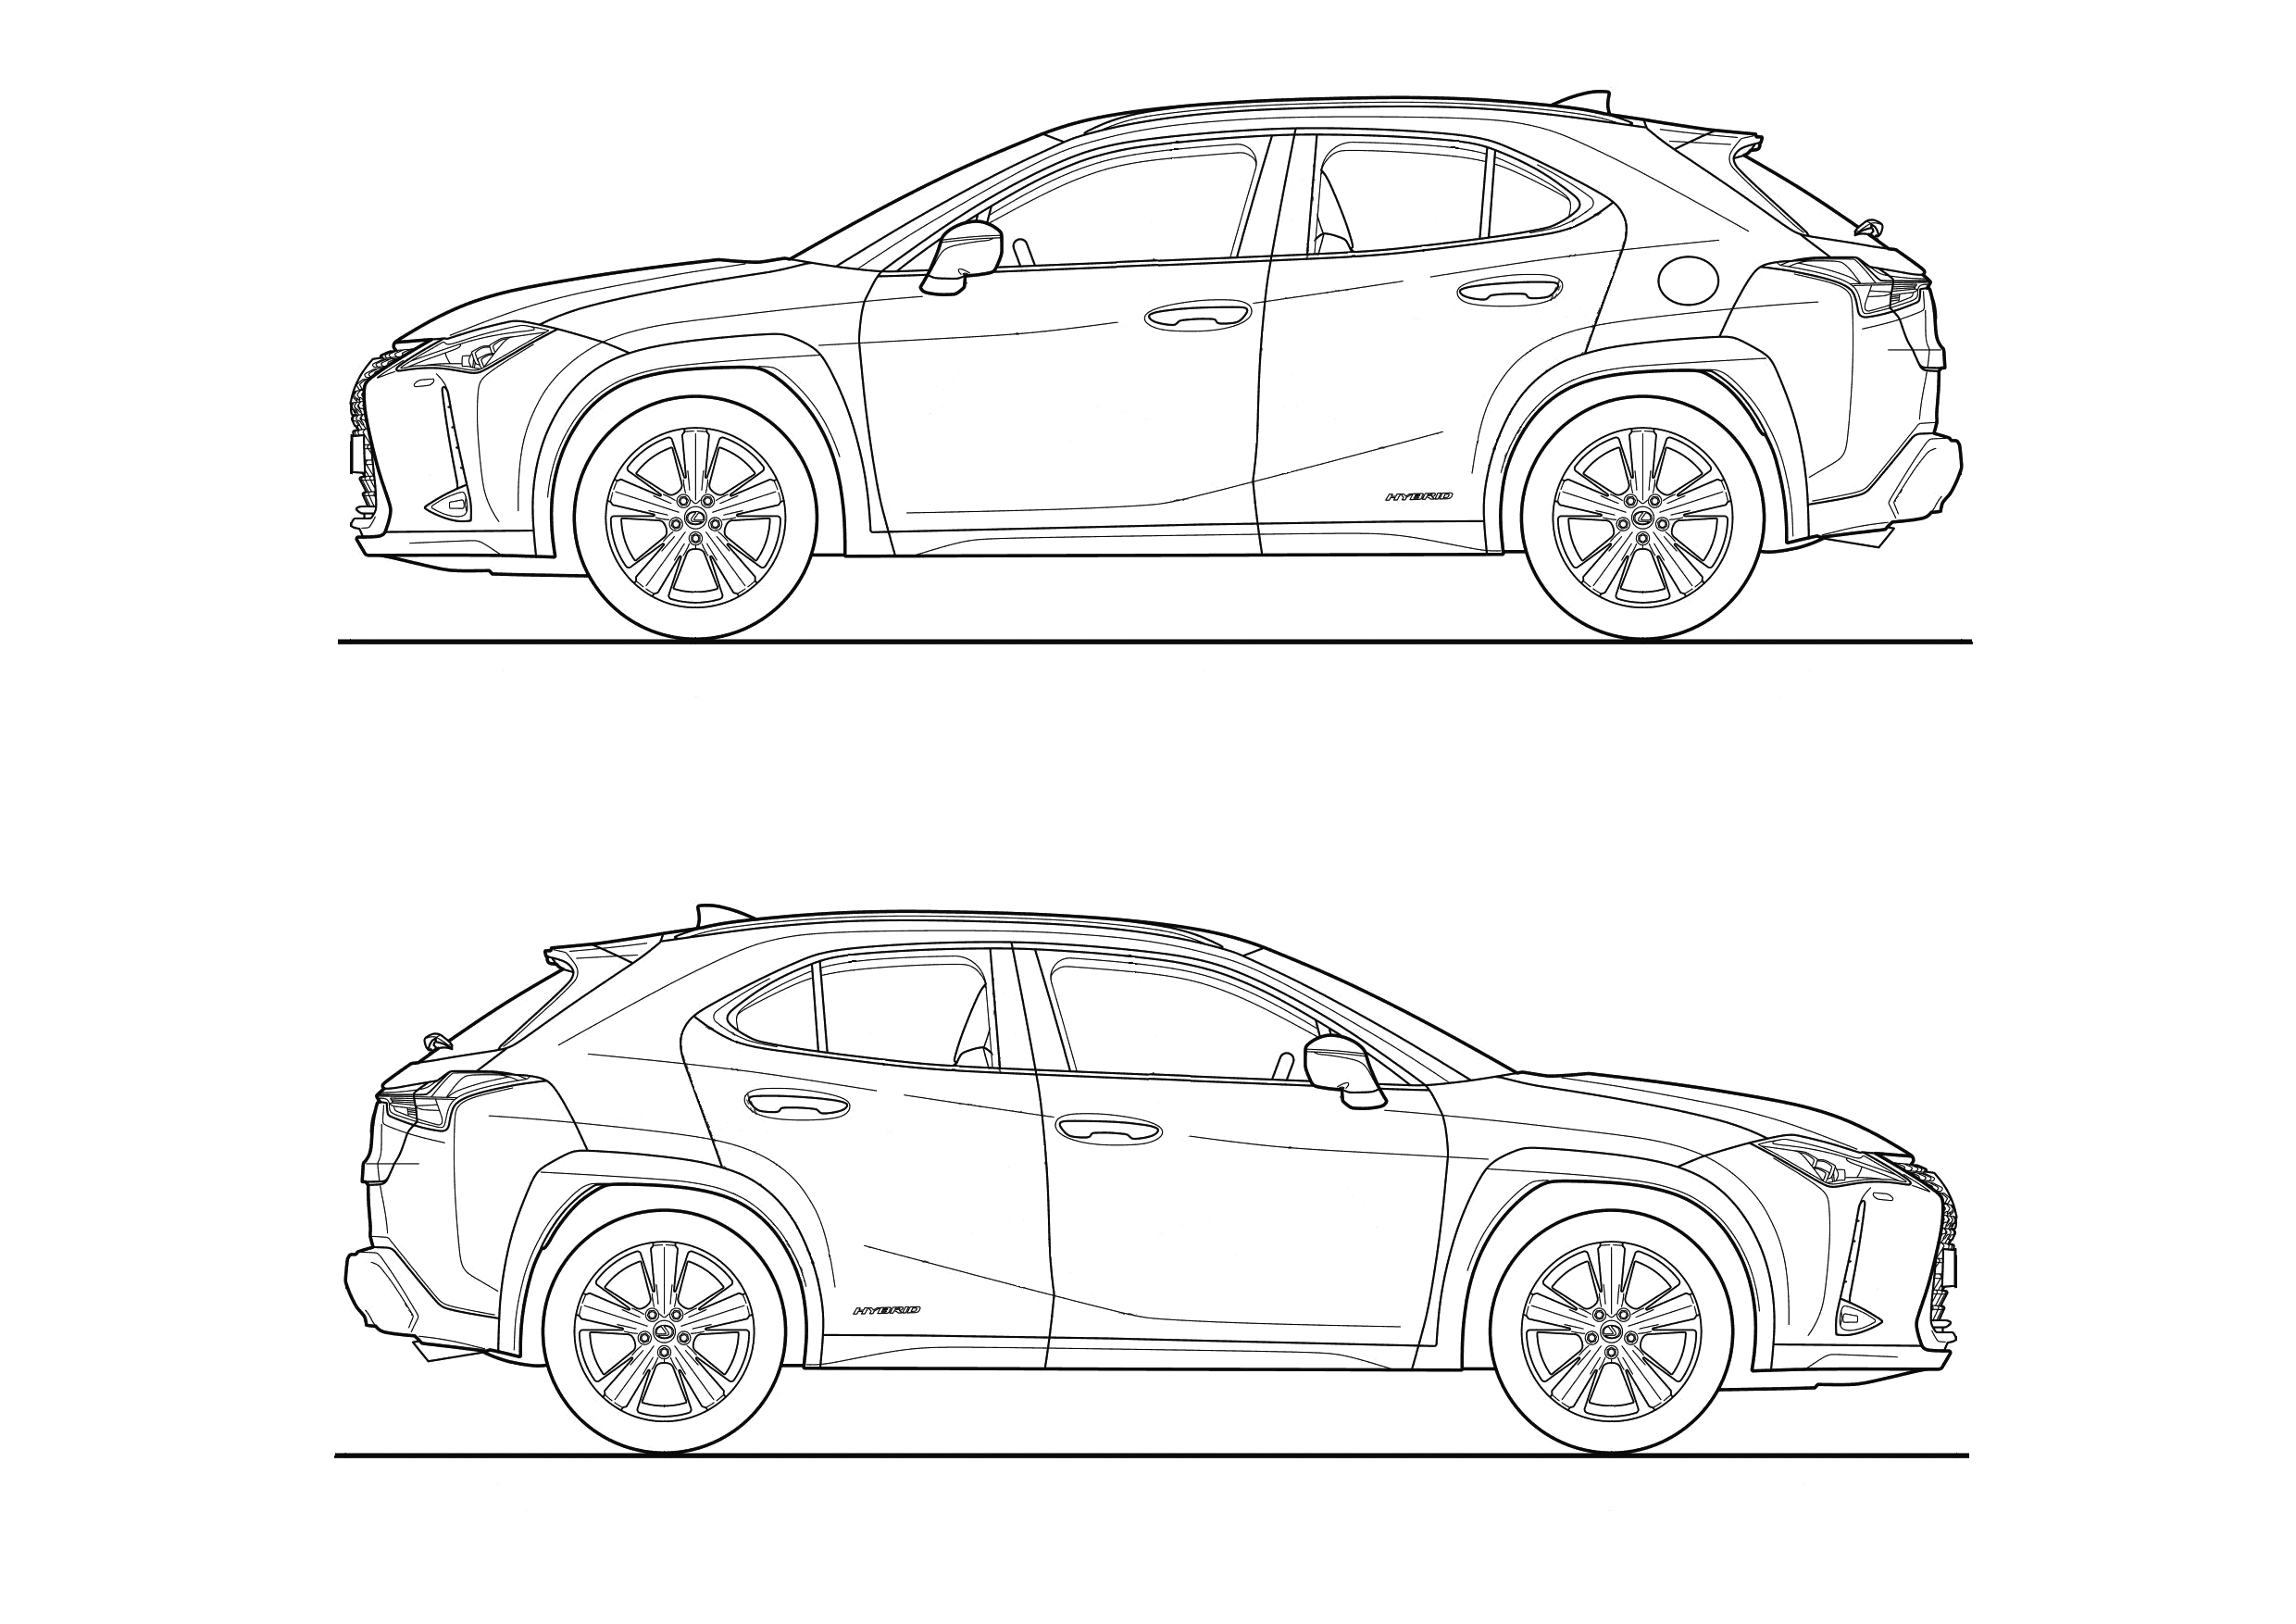 Design your own tattooed car